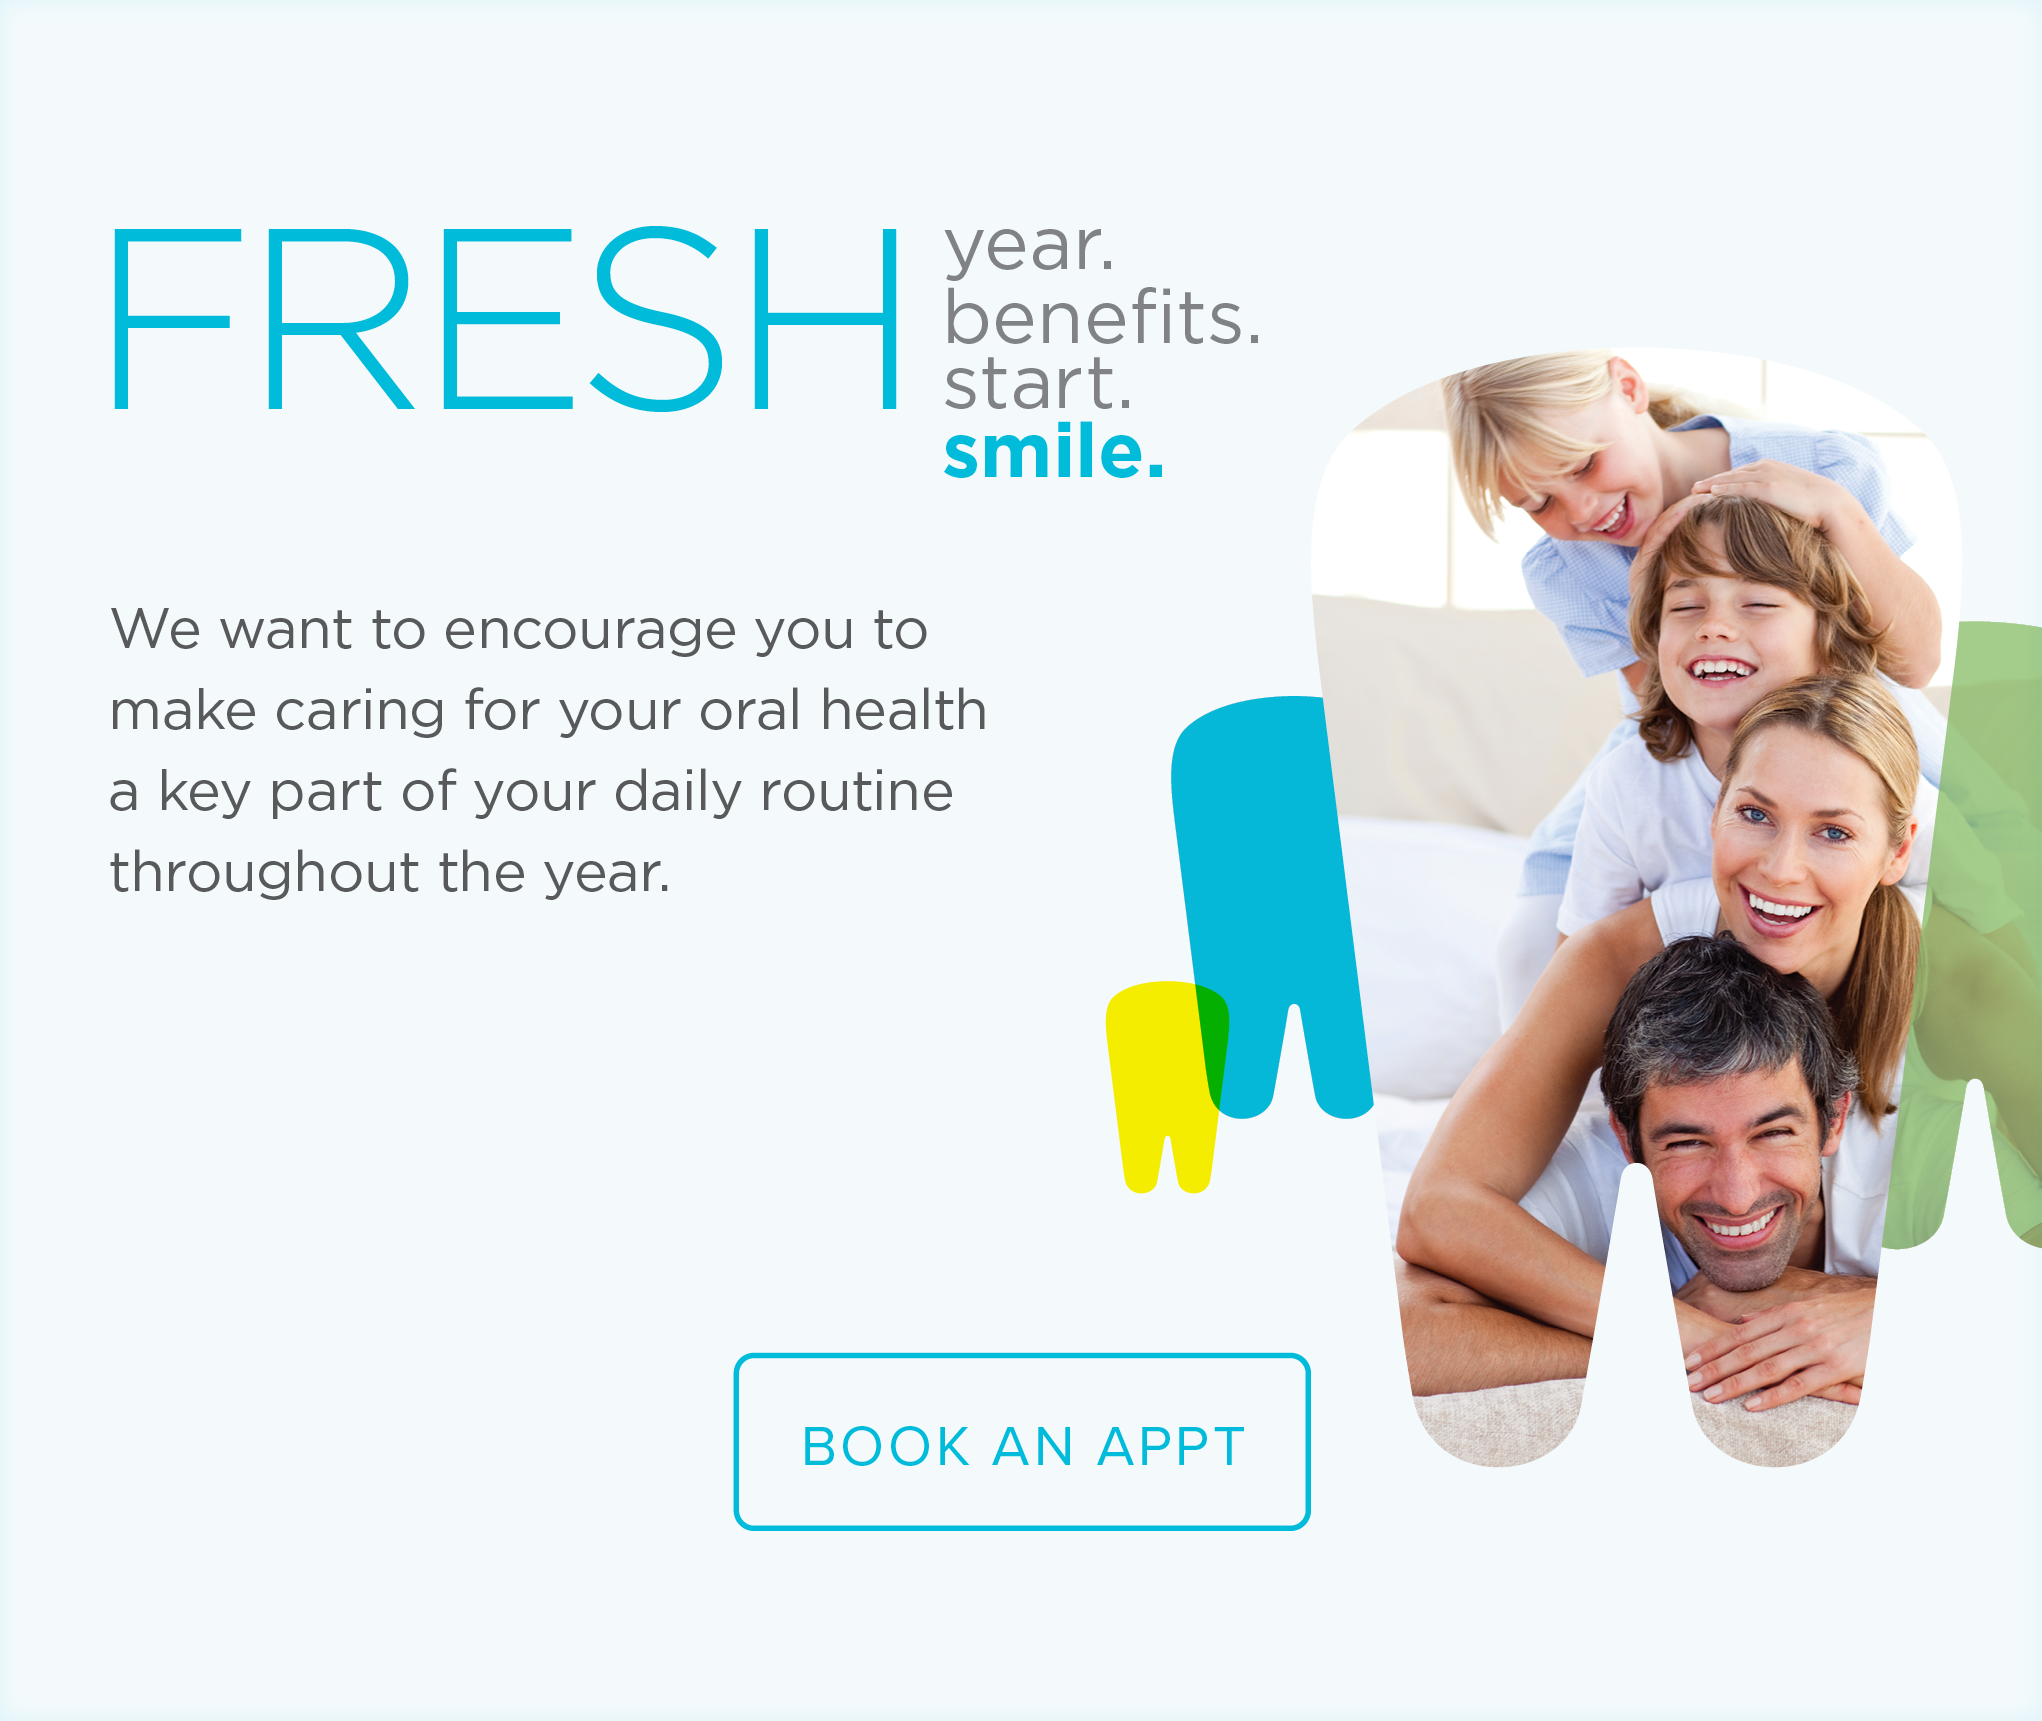 Stoneridge Dental Group and Orthodontics - Make the Most of Your Benefits